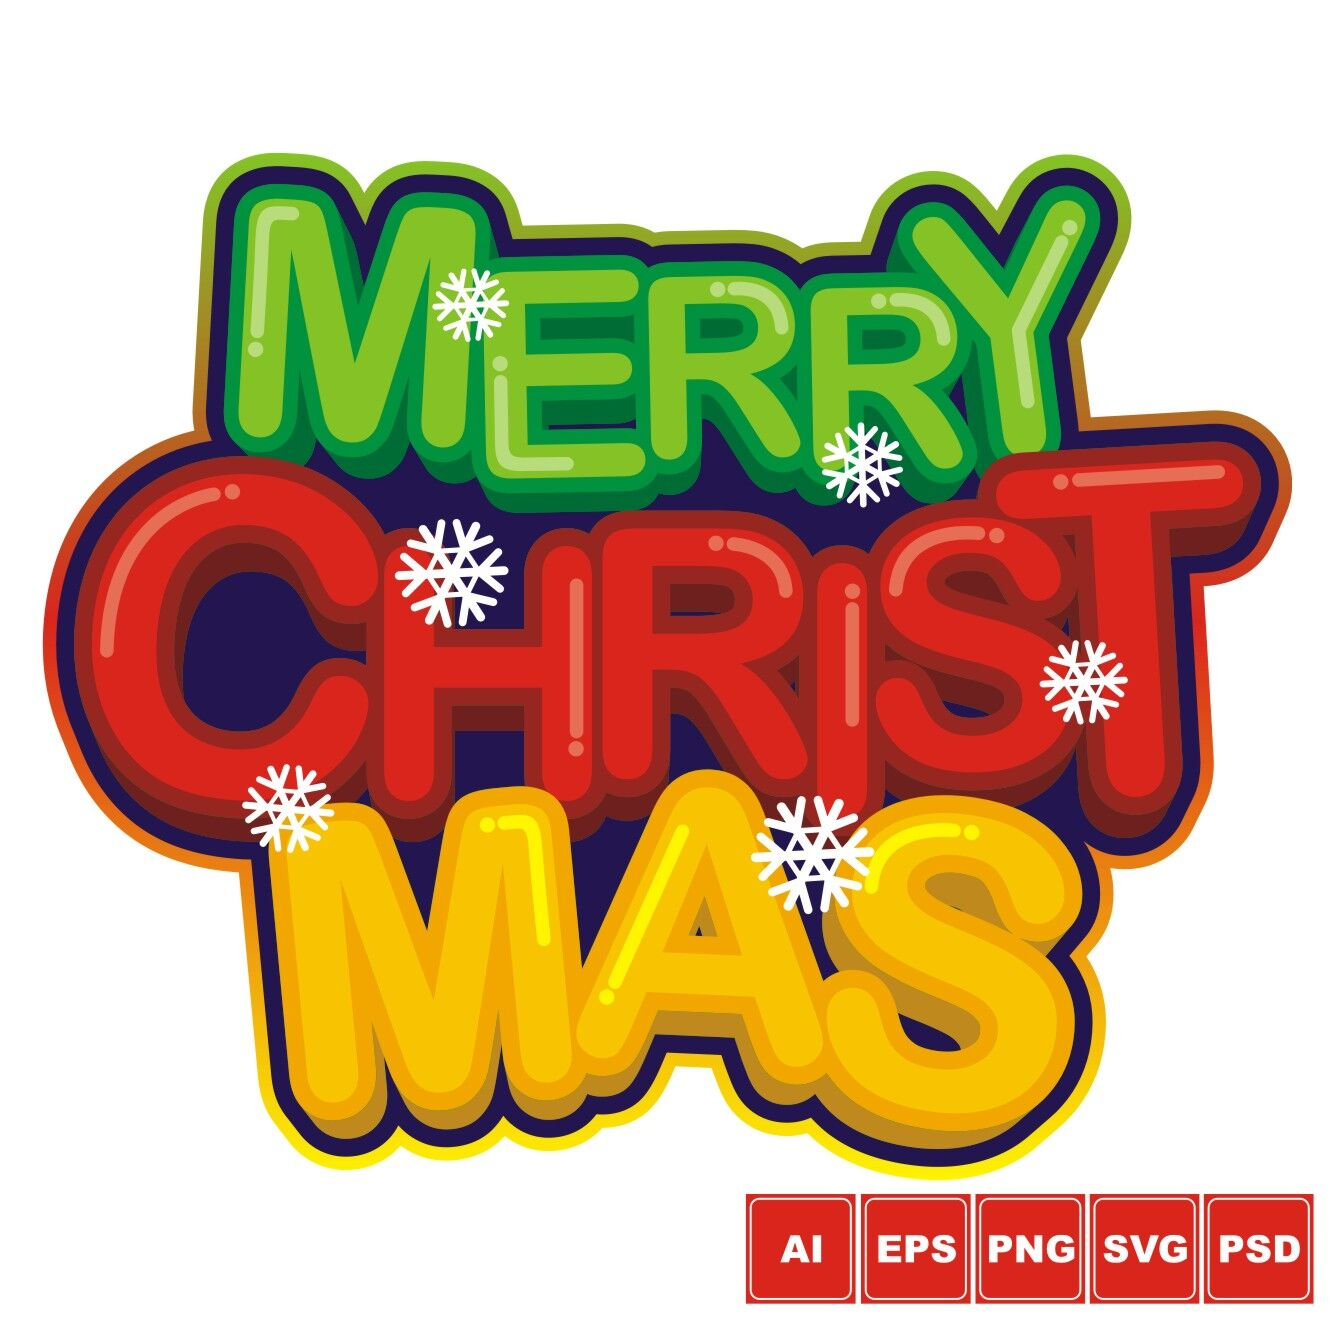 merry christmas logo design by azkaryzki thehungryjpeg com the hungry jpeg